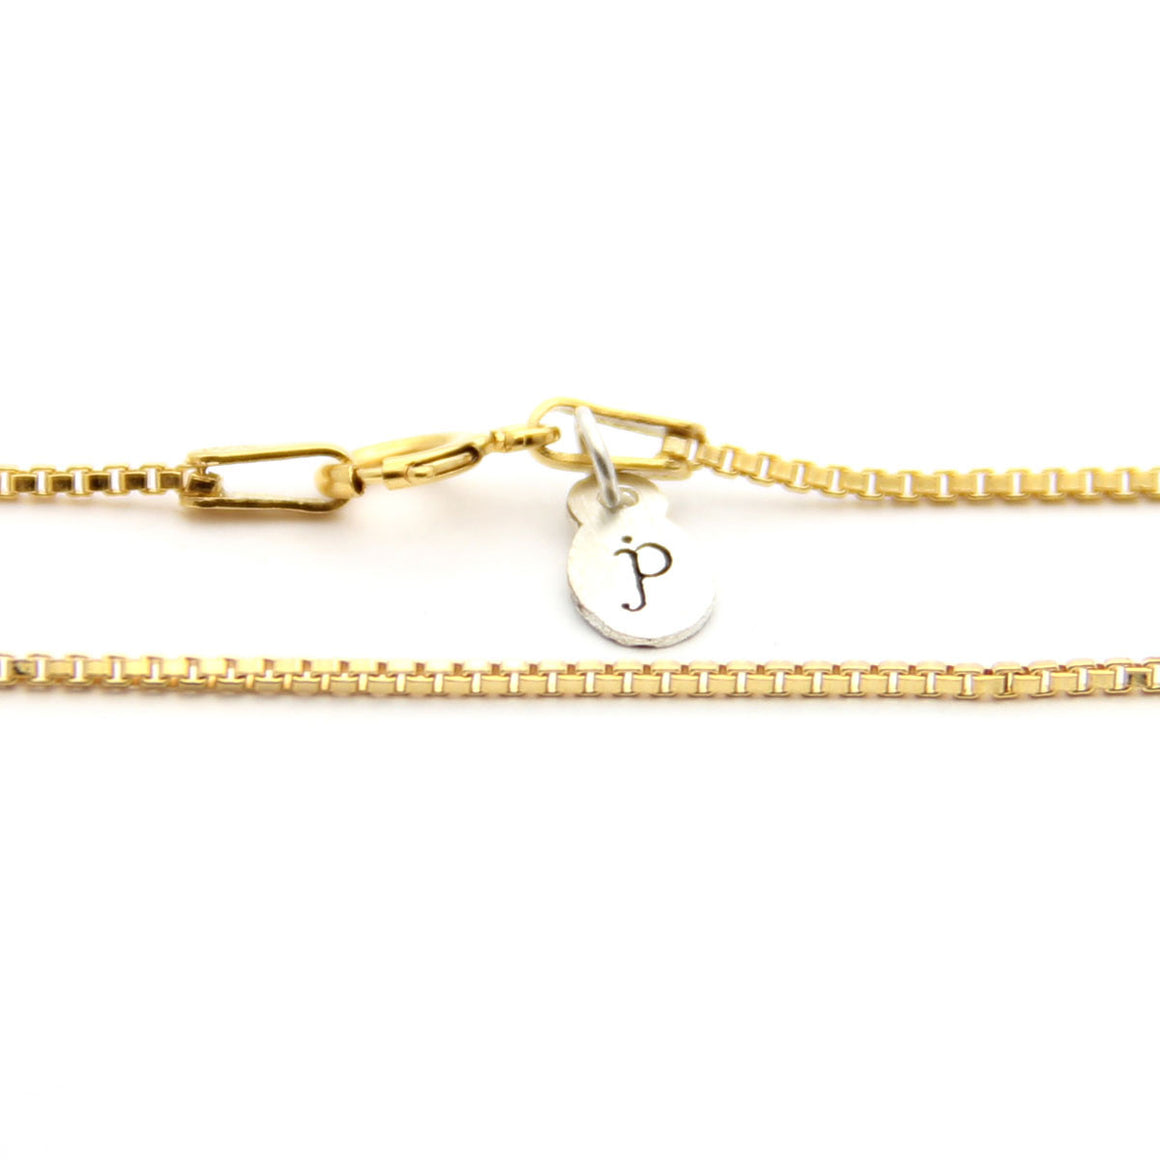 gold box chain length options, gold chain add on, design your own necklace, jenny present®